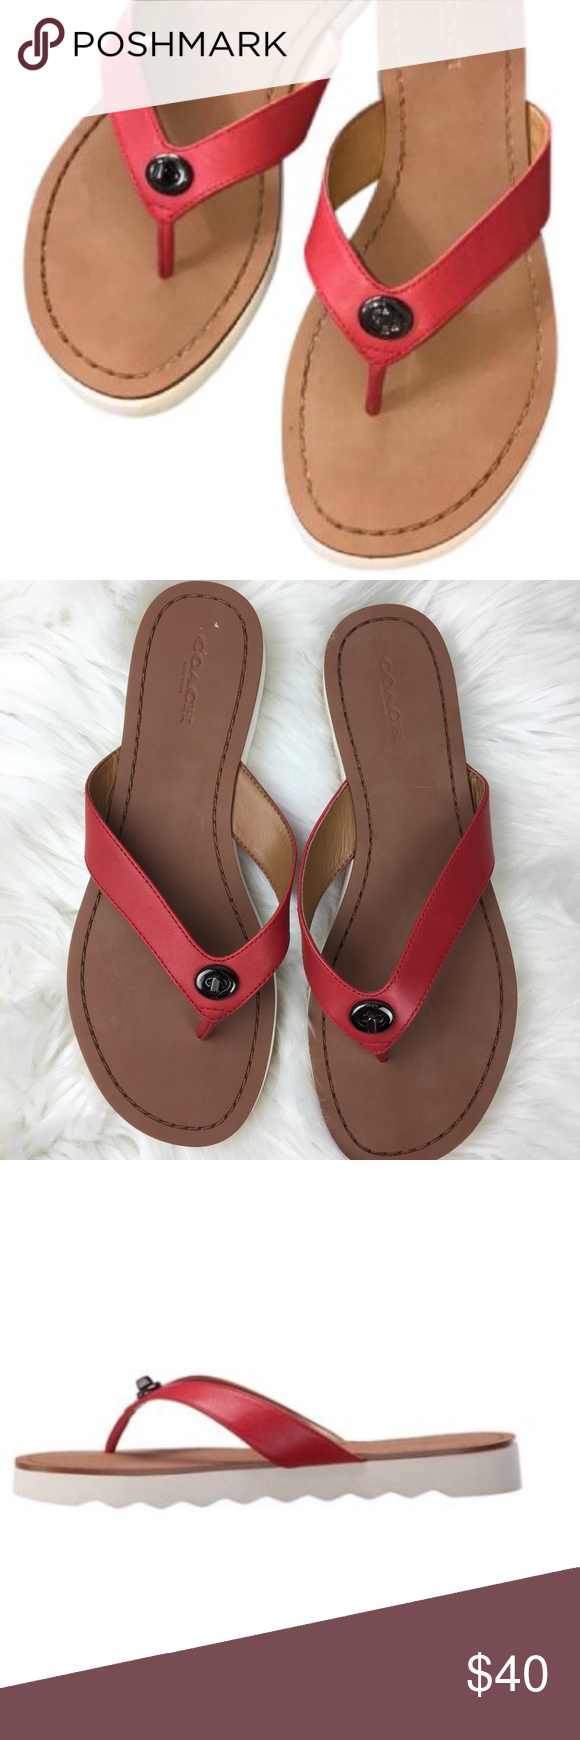 df800aa70ab3 Coach Shelly Flip-flop red thong sandals New without box. Coach Shelly red  thong